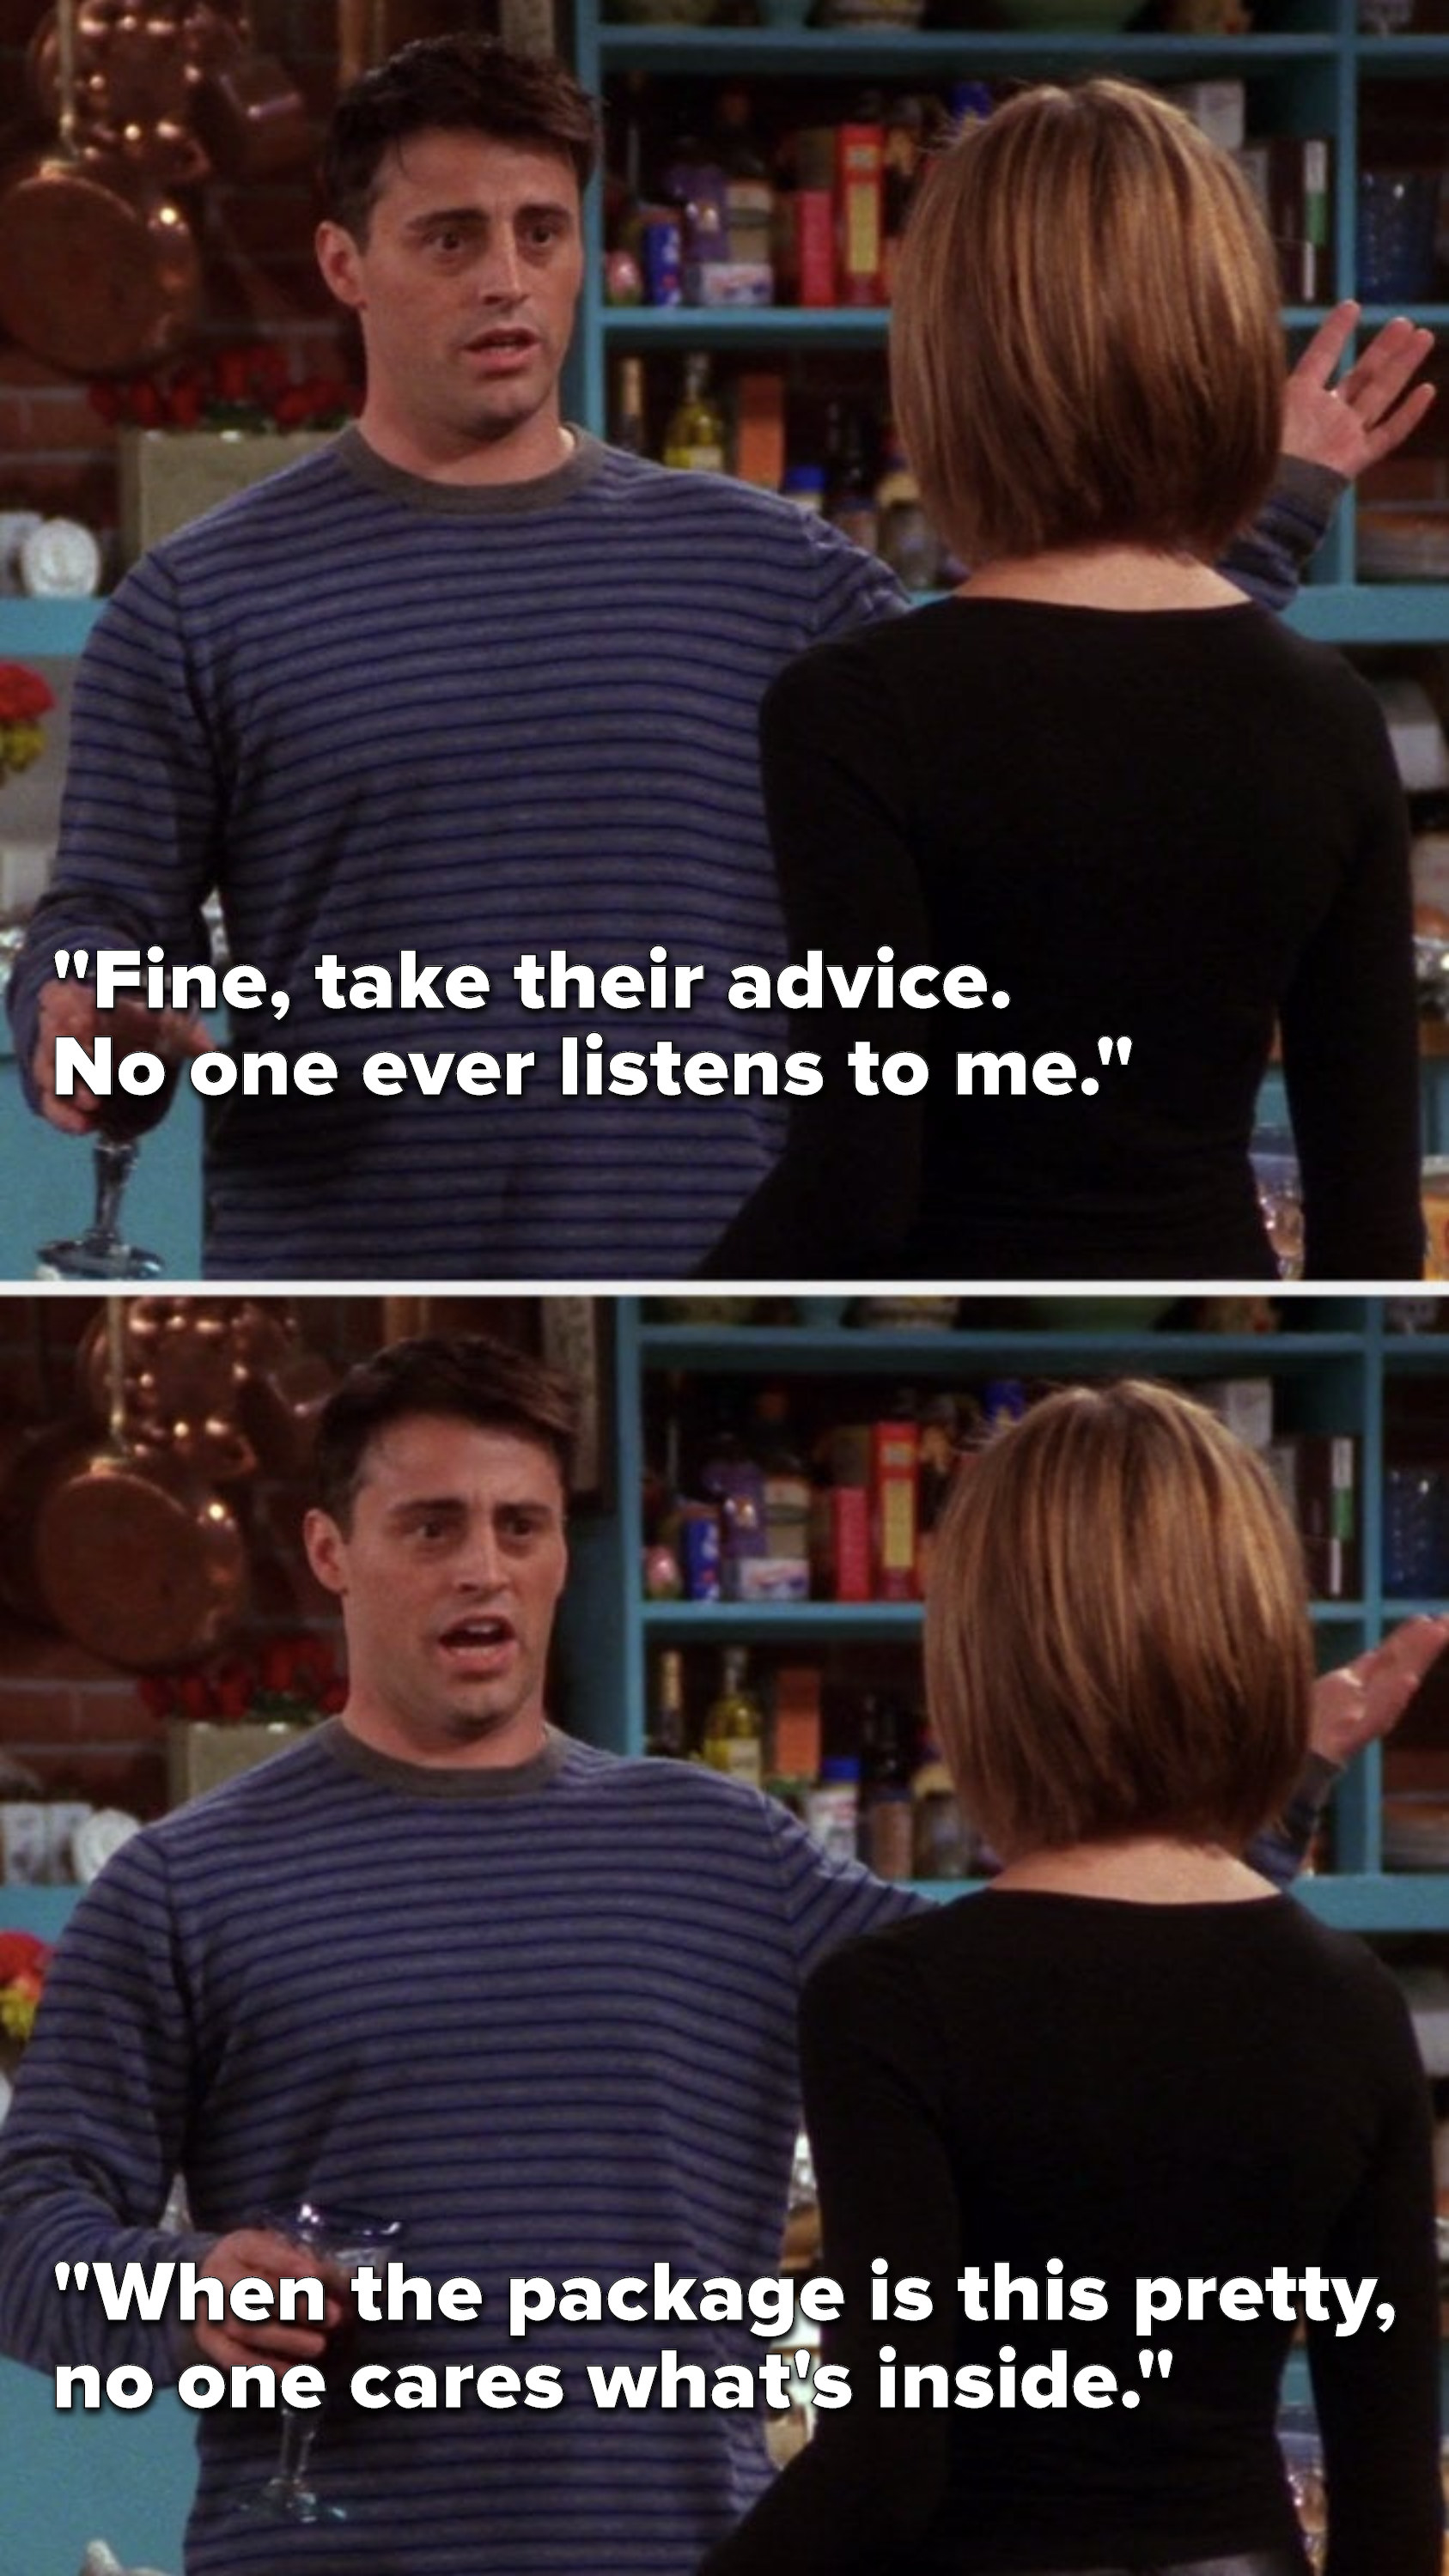 """Joey says, """"Fine, take their advice, no one ever listens to me, when the package is this pretty, no one cares what's inside"""""""